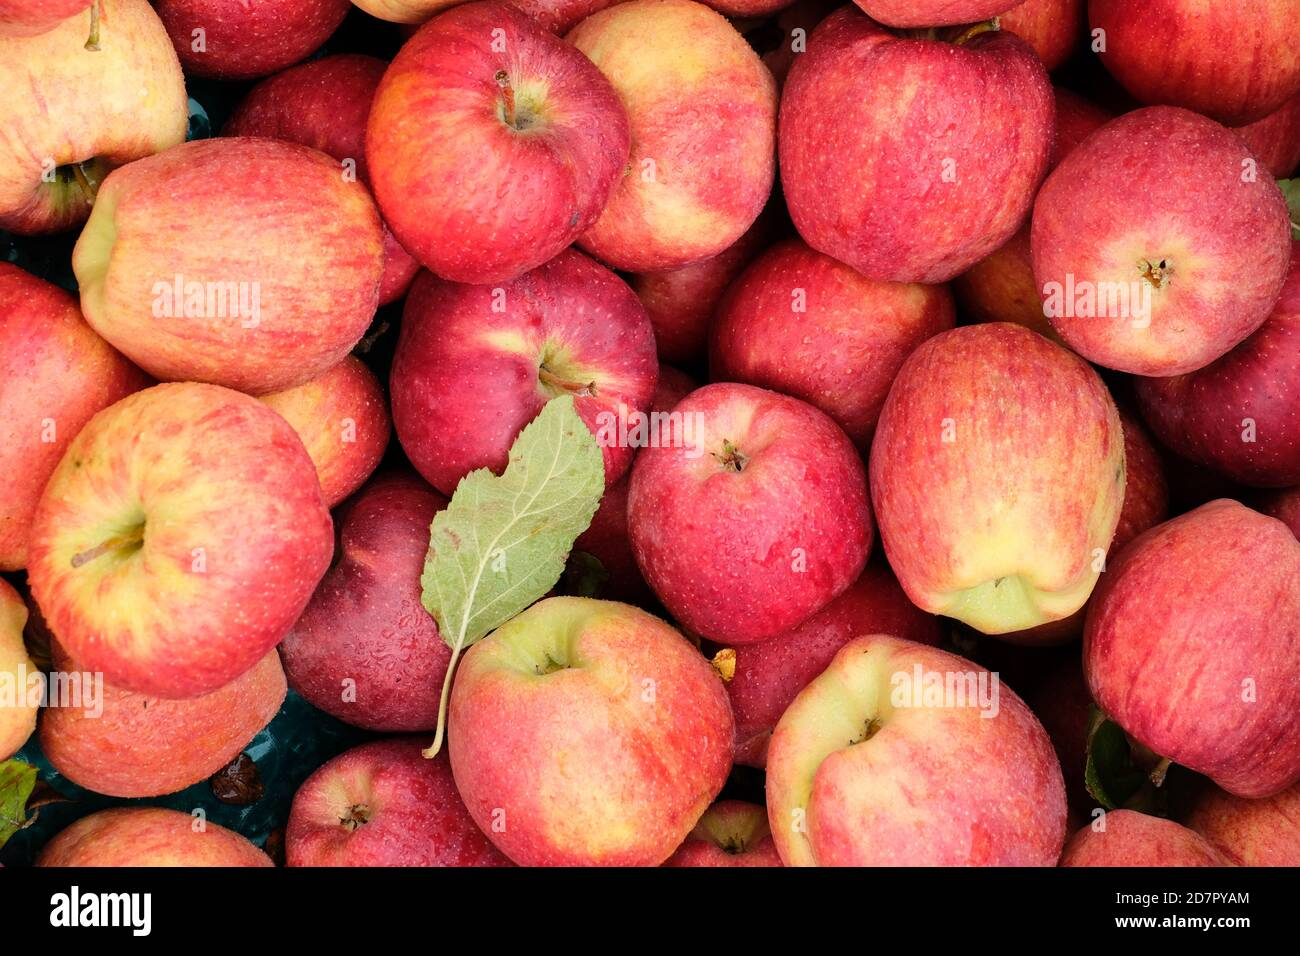 Close up view of freshly picked gala apples at roadside fruit stand Stock Photo